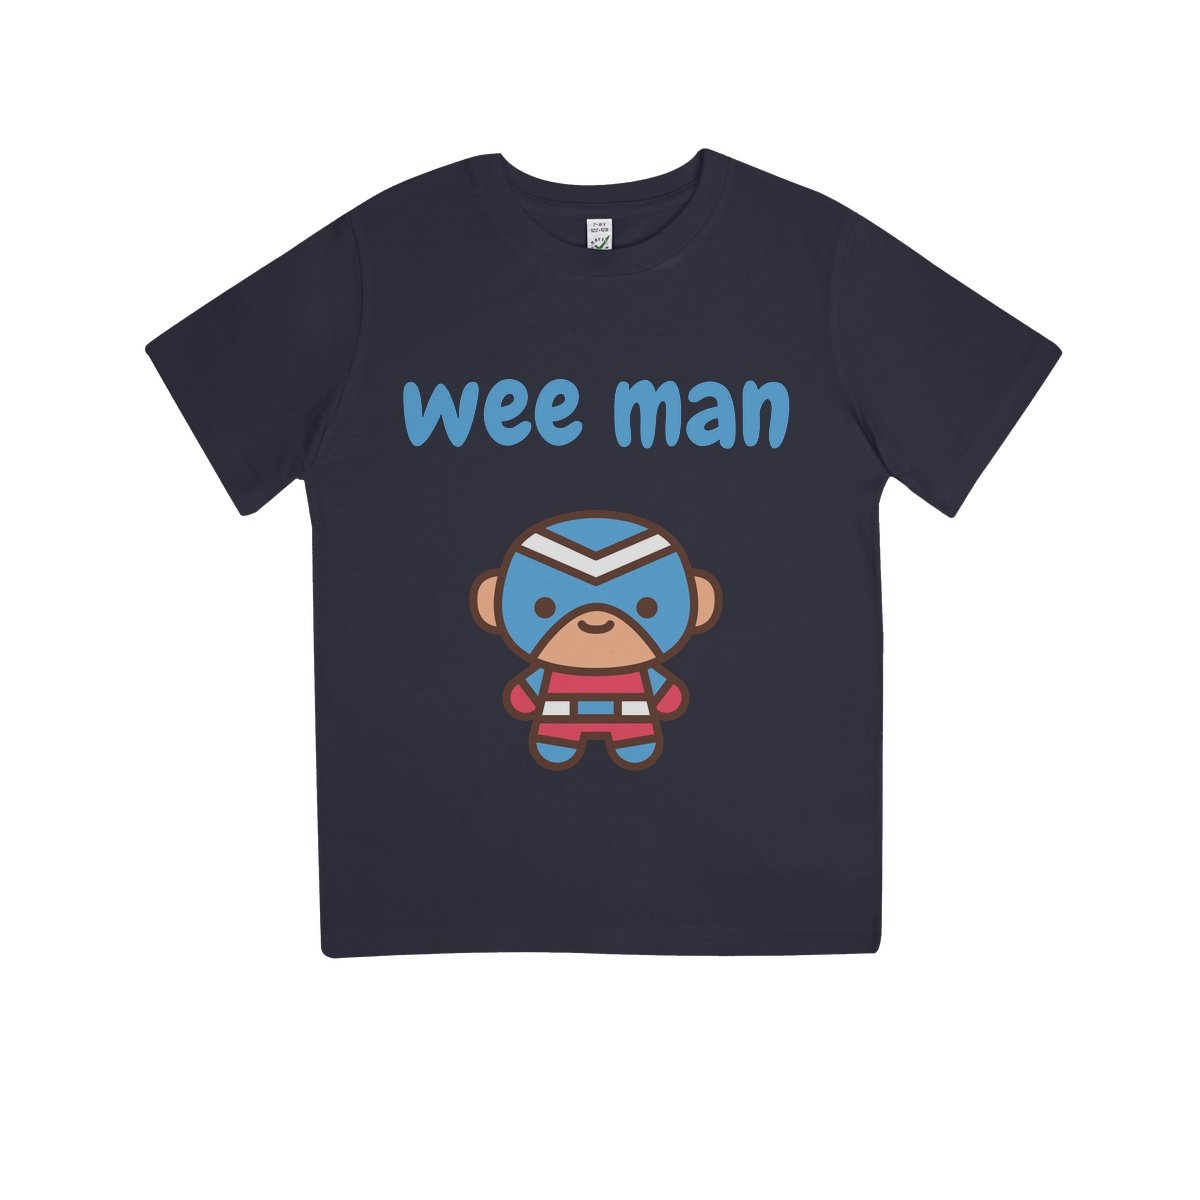 Wee Man Kids 100% Organic T-Shirt by stray funk design